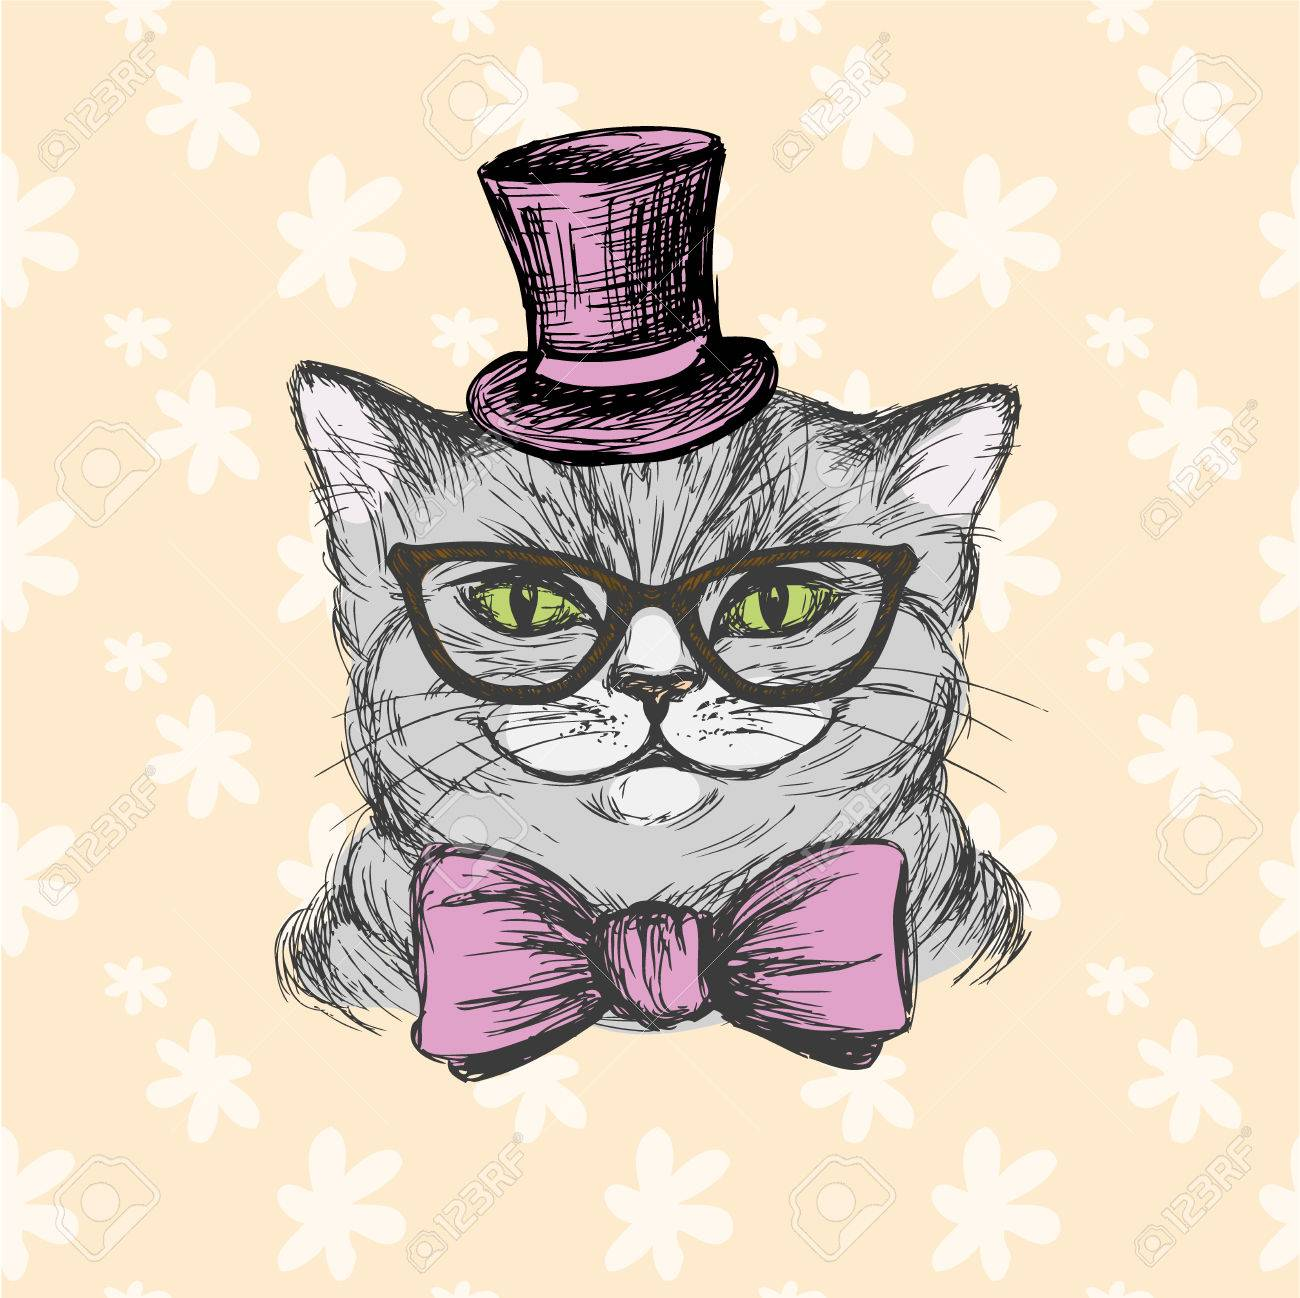 c3b27bf401af Fashion cat in a hat, glasses and a bow tie. Hand drawing vector  illustration